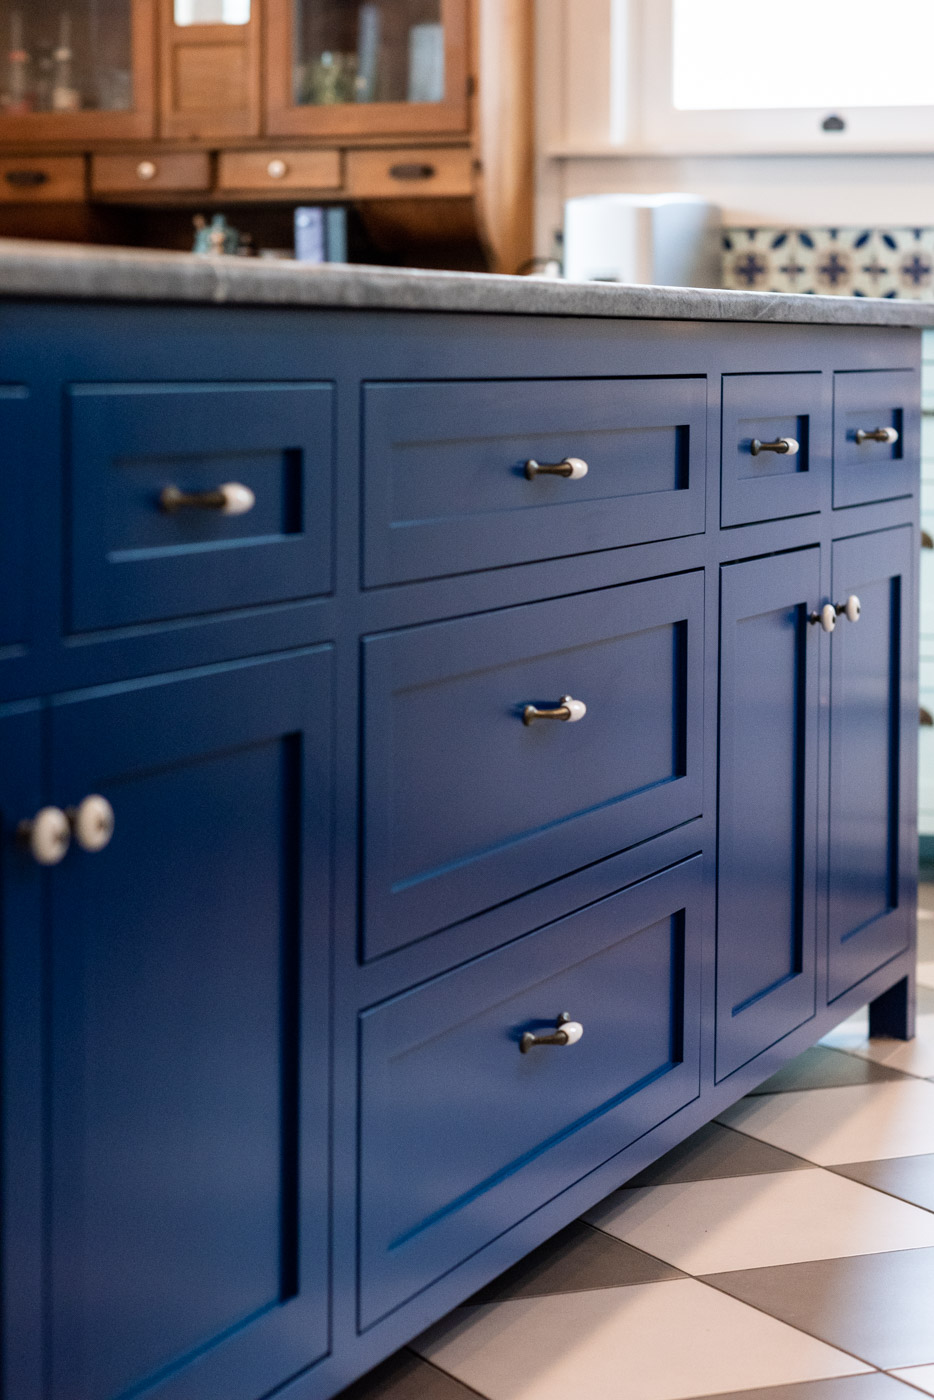 Eclectic Country Craftsman kitchen with custom blue painted cabinets and island storage